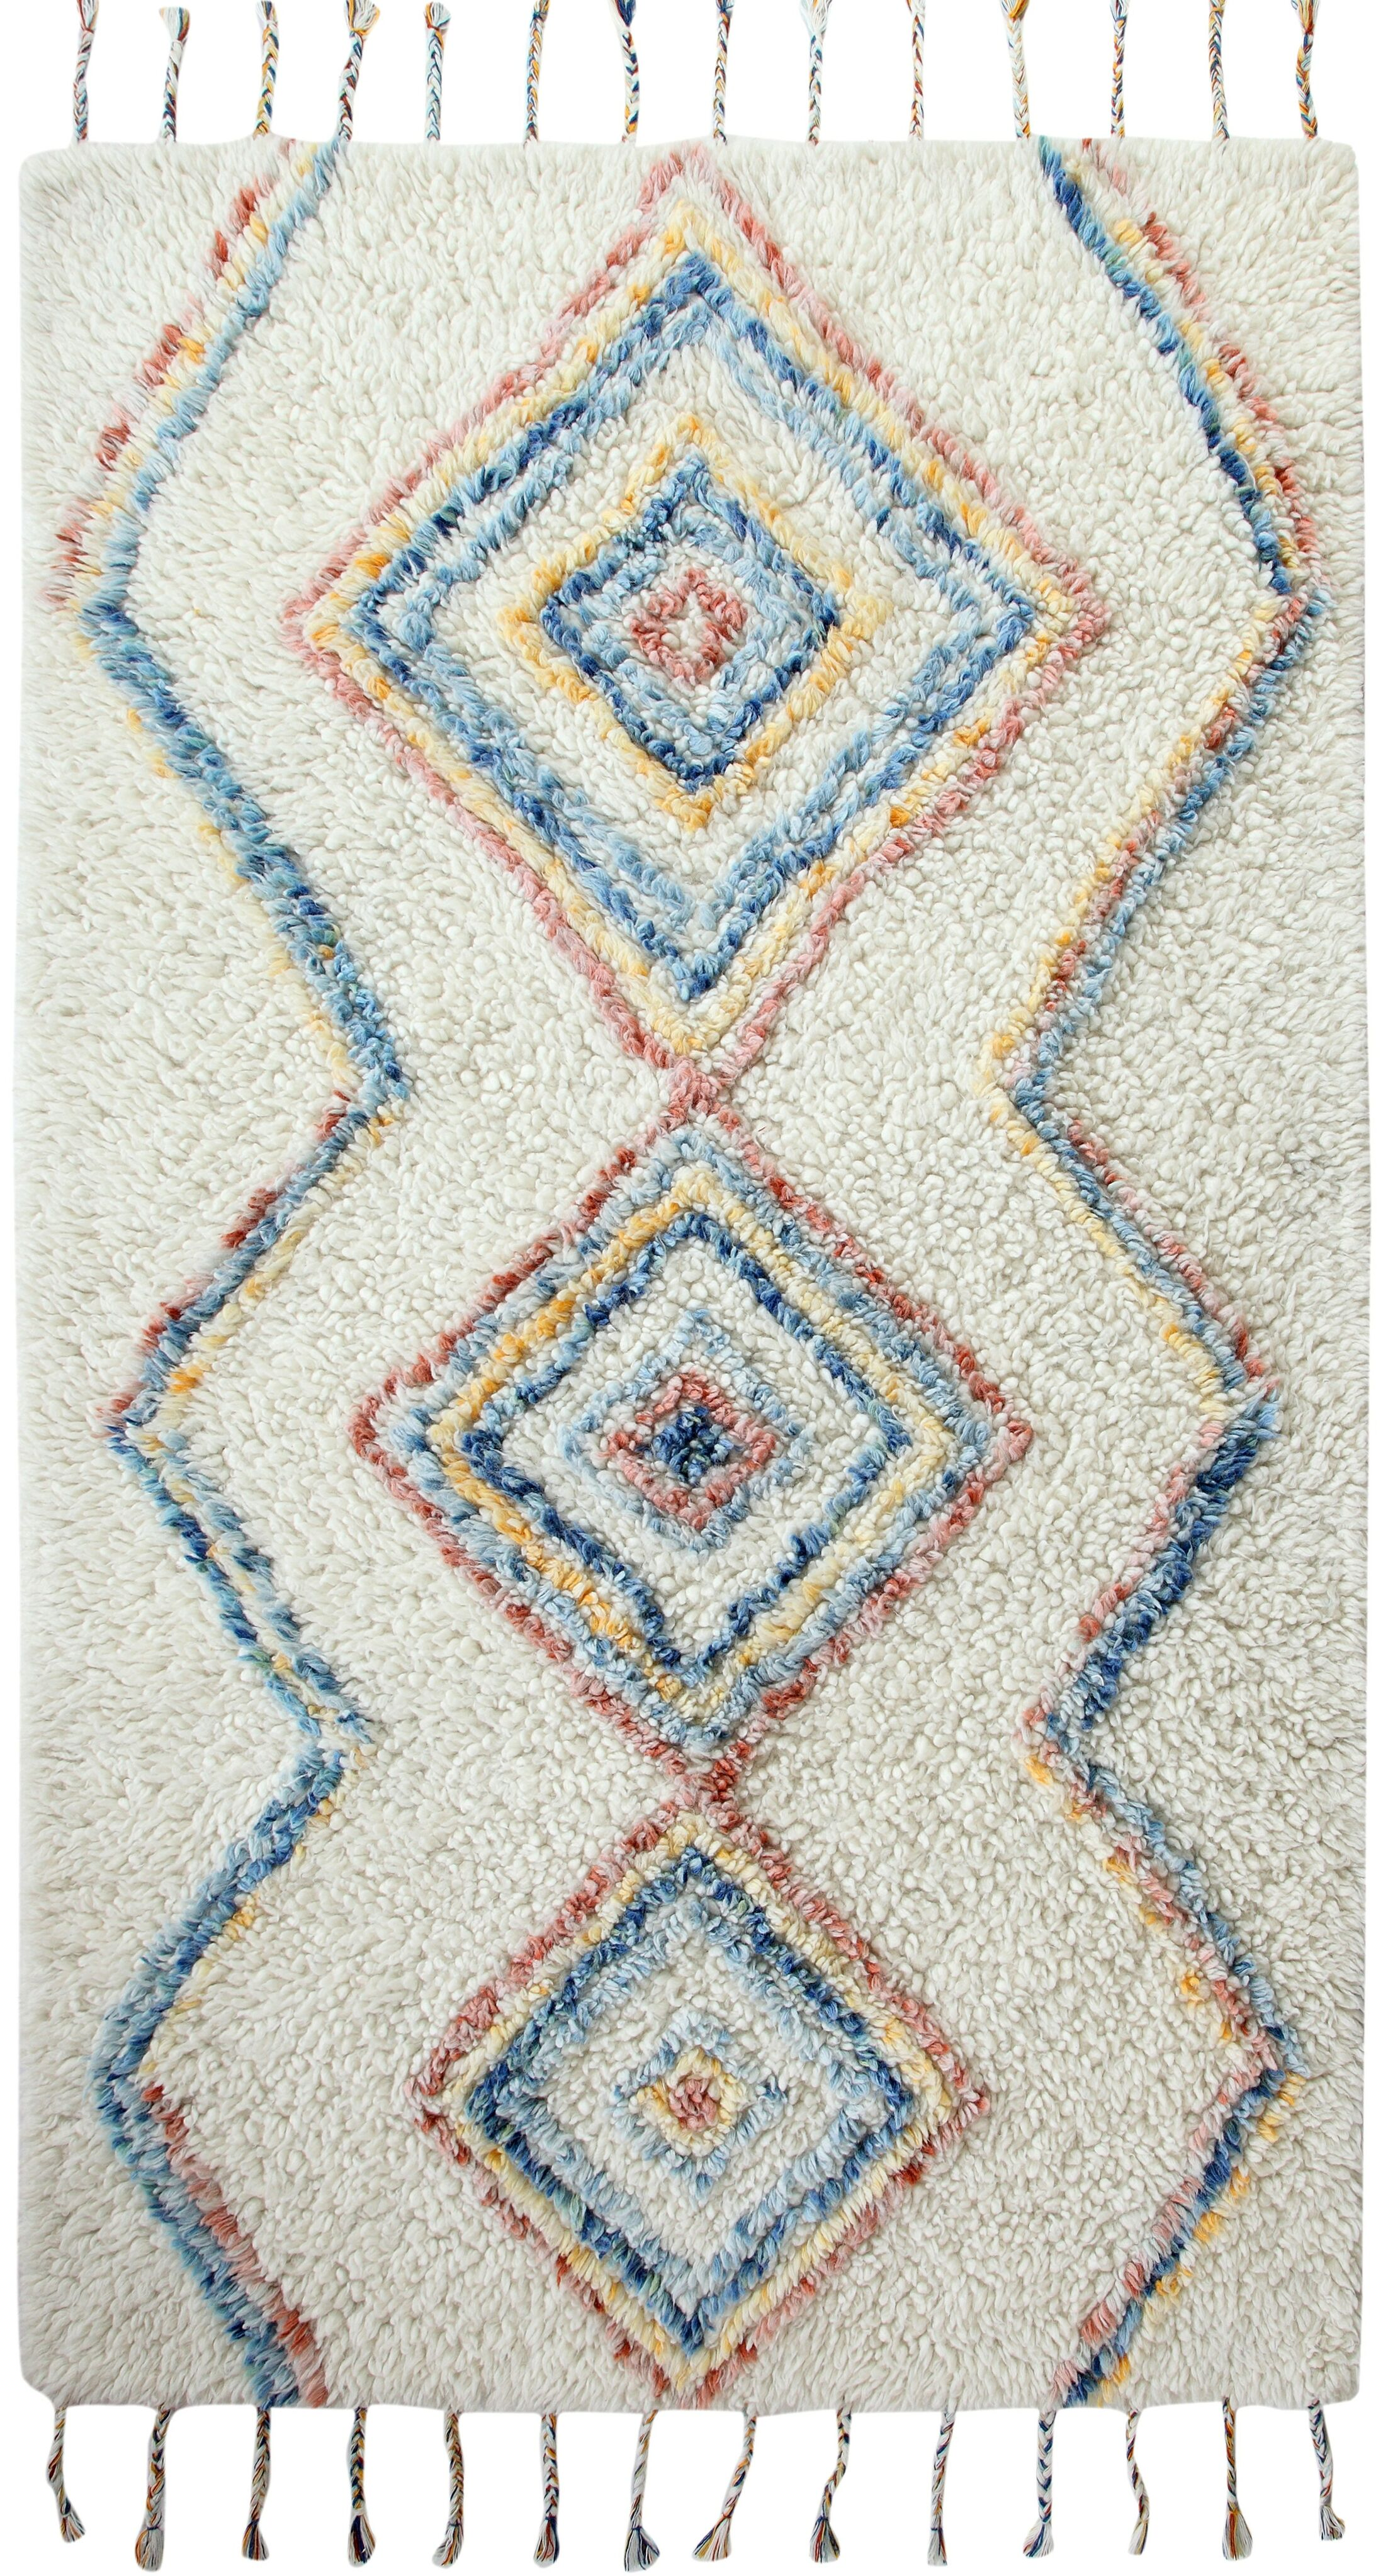 Keely Hand-Woven Beige/Blue/Red Area Rug Rug Size: Rectangle 3' x 5'